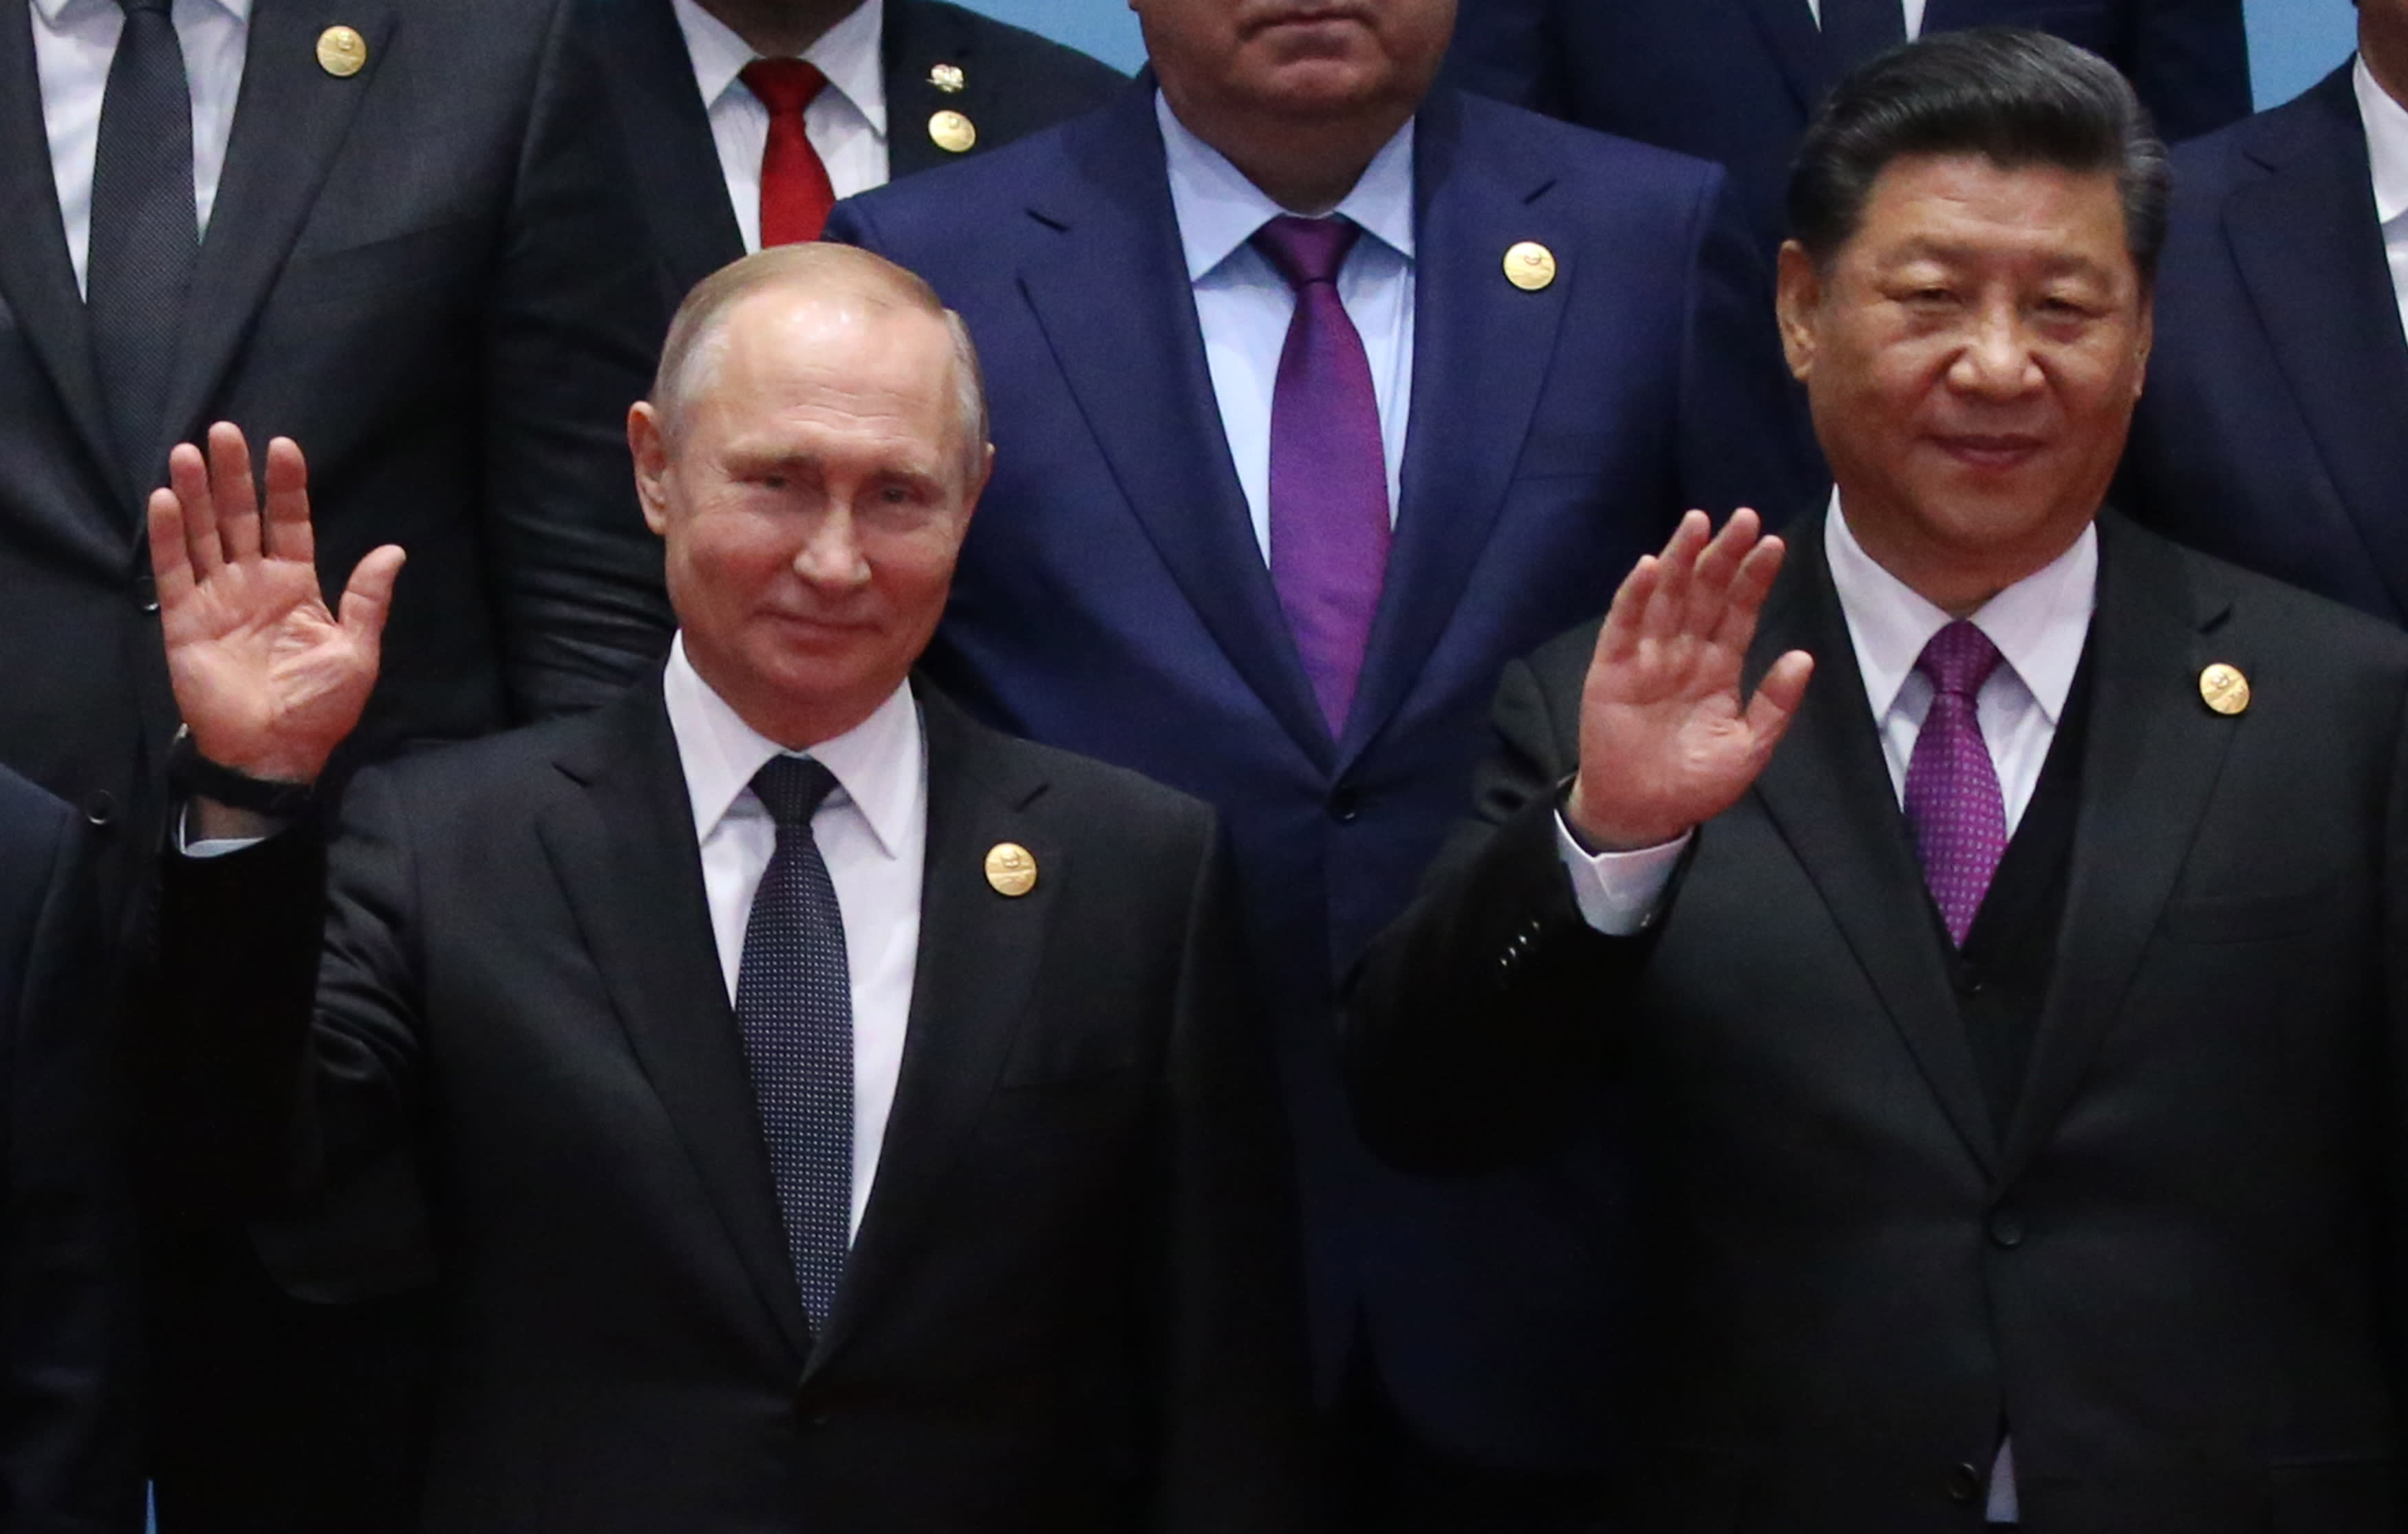 A US detente with China and Russia would boost the world economy